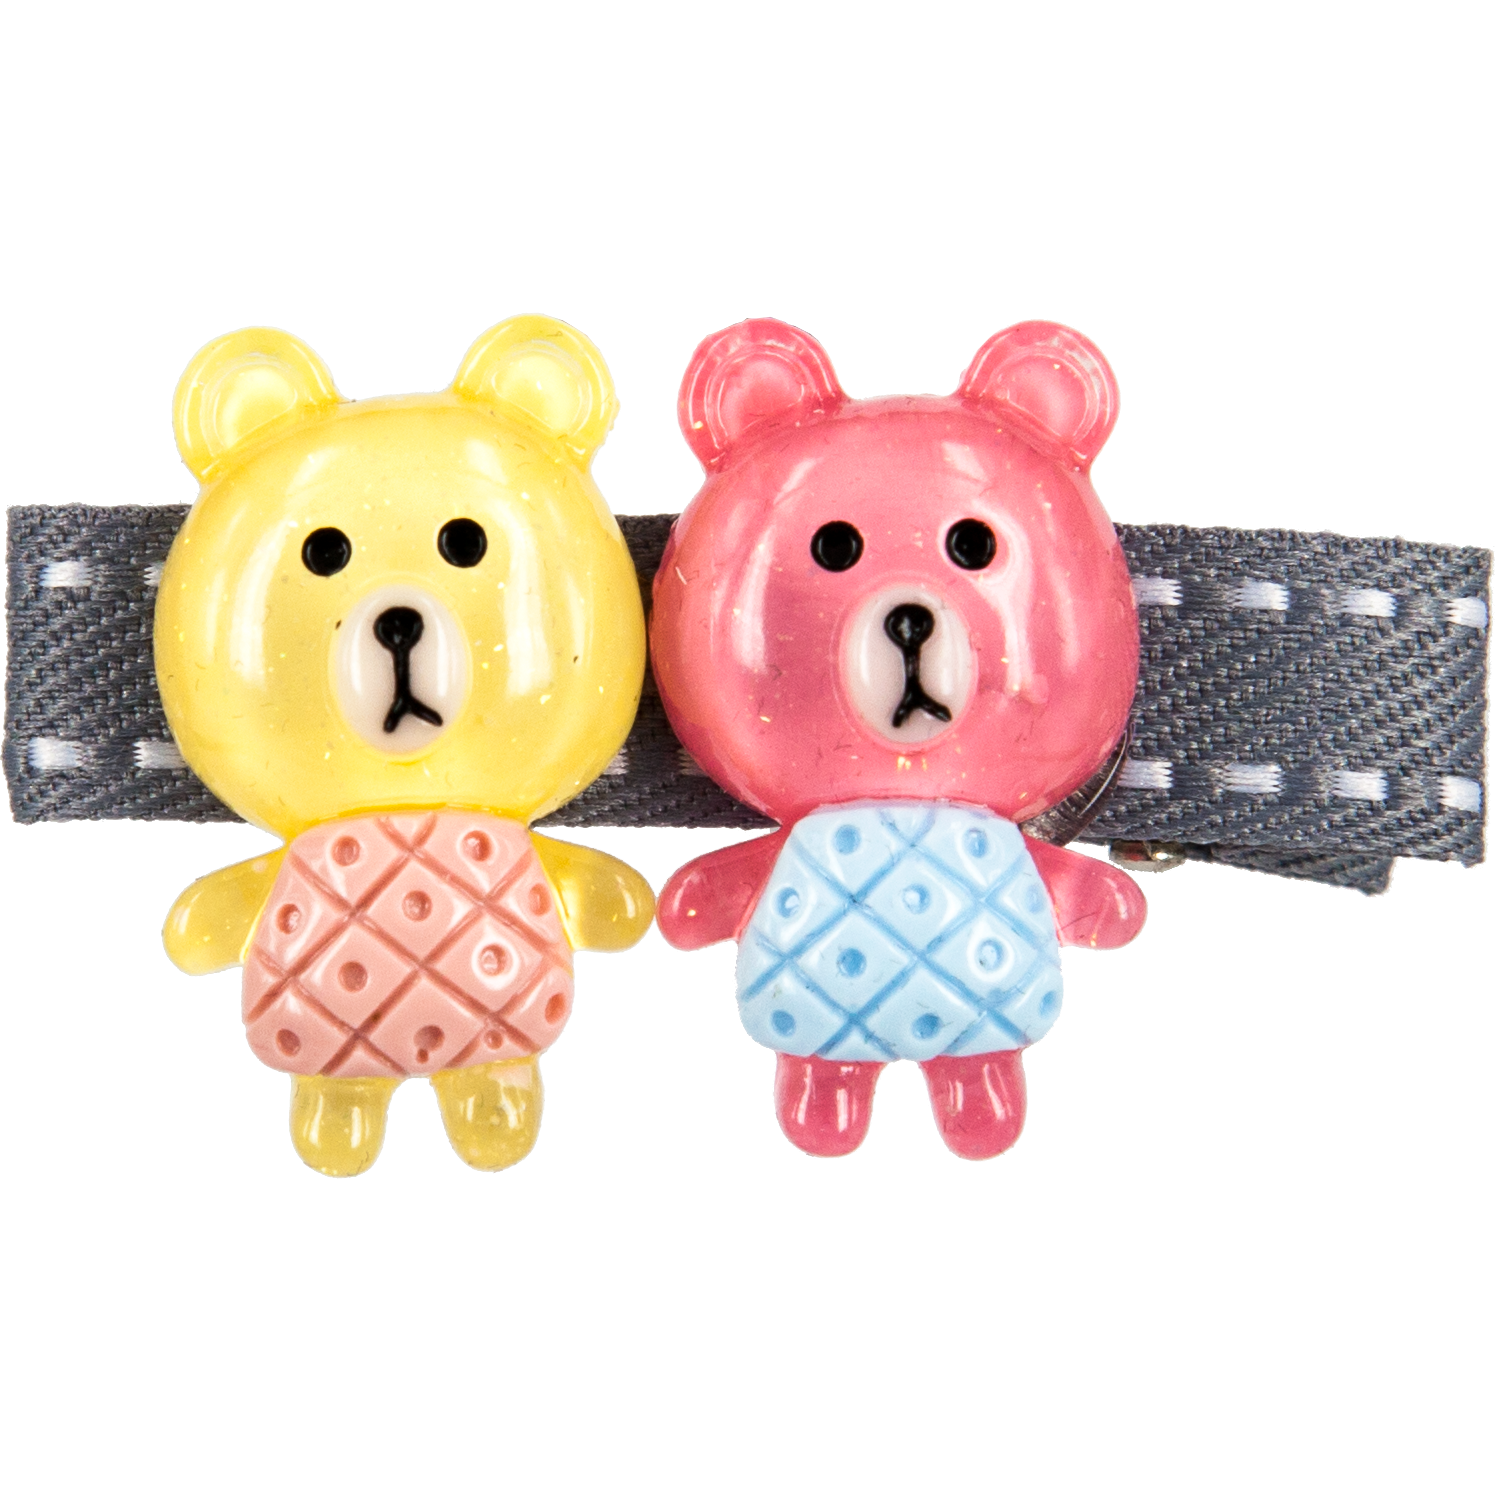 CLIP WITH 2 BEARS